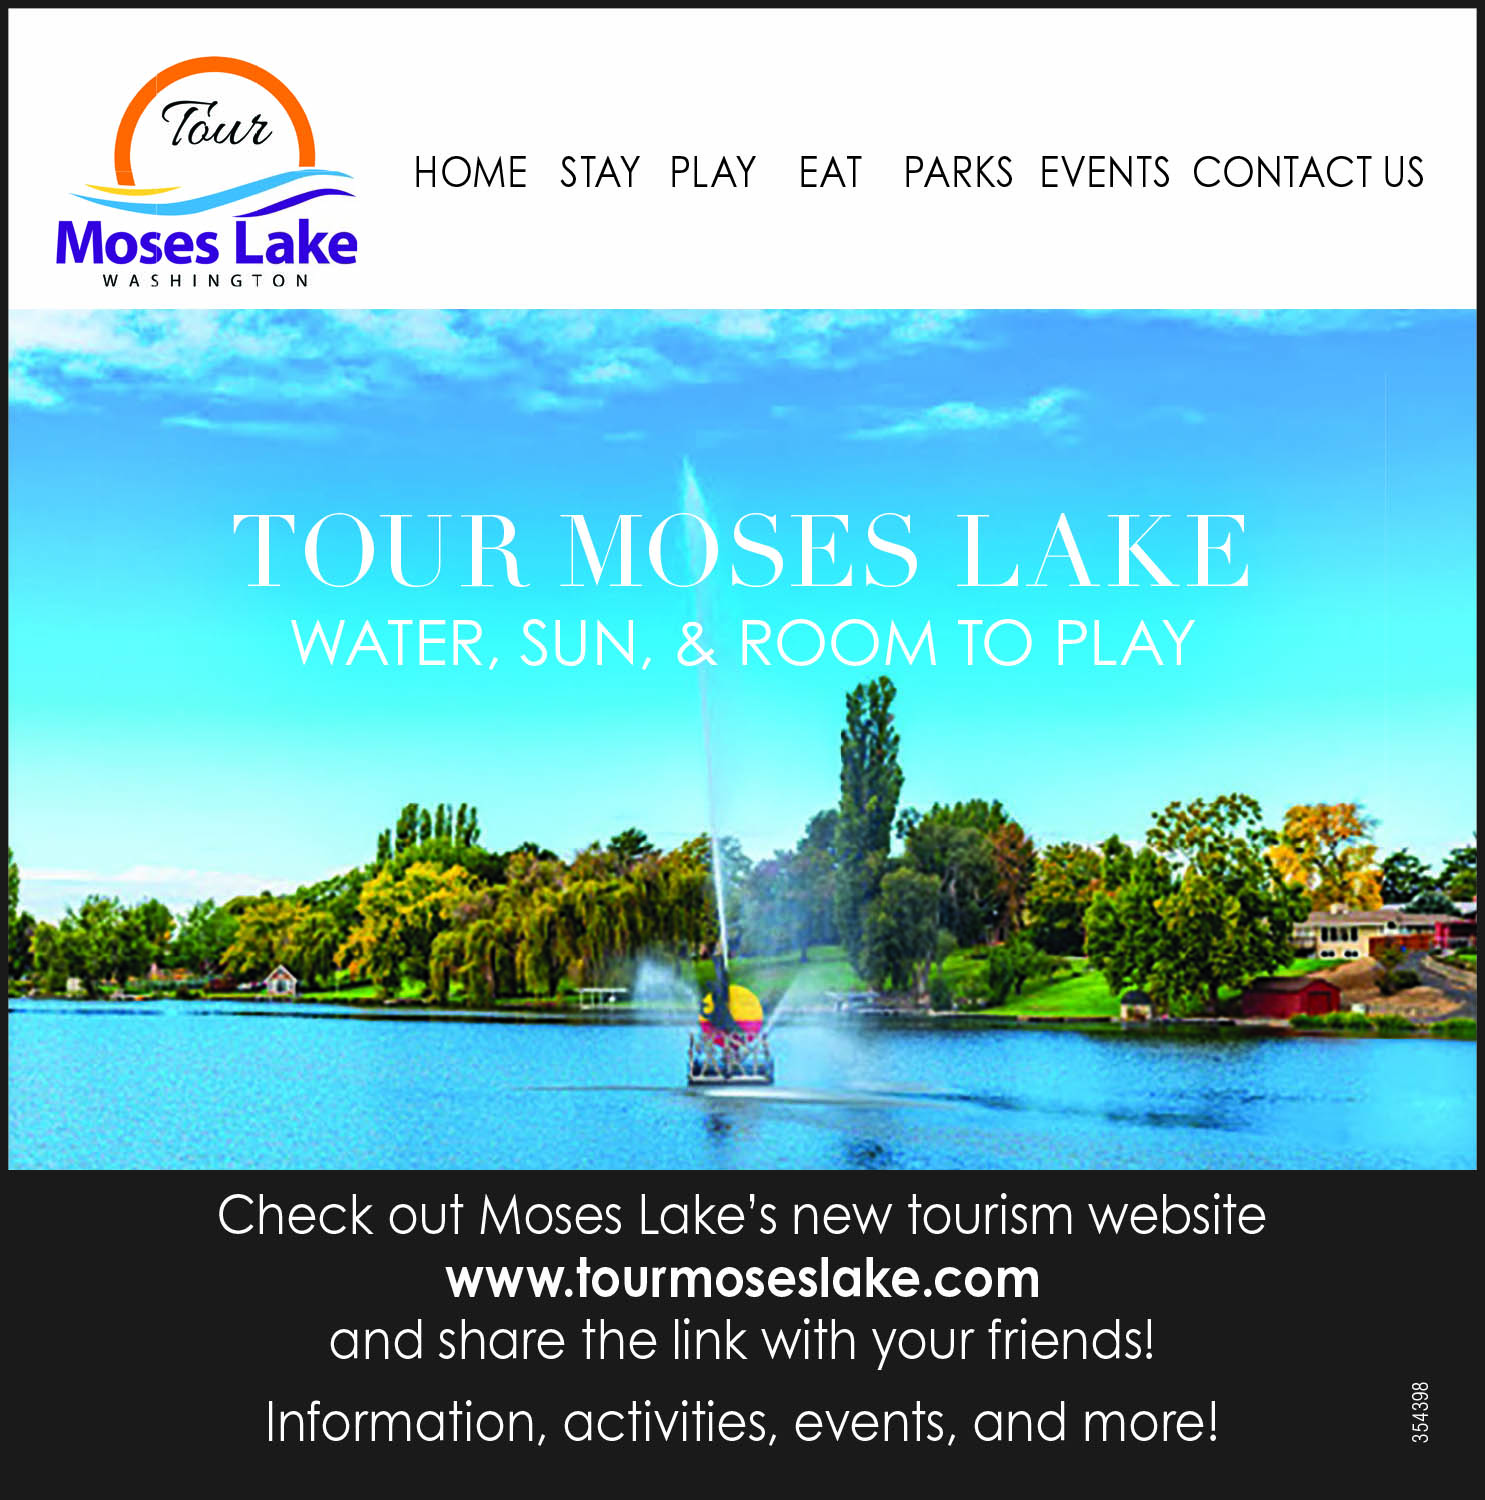 Tour Moses Lake website launches